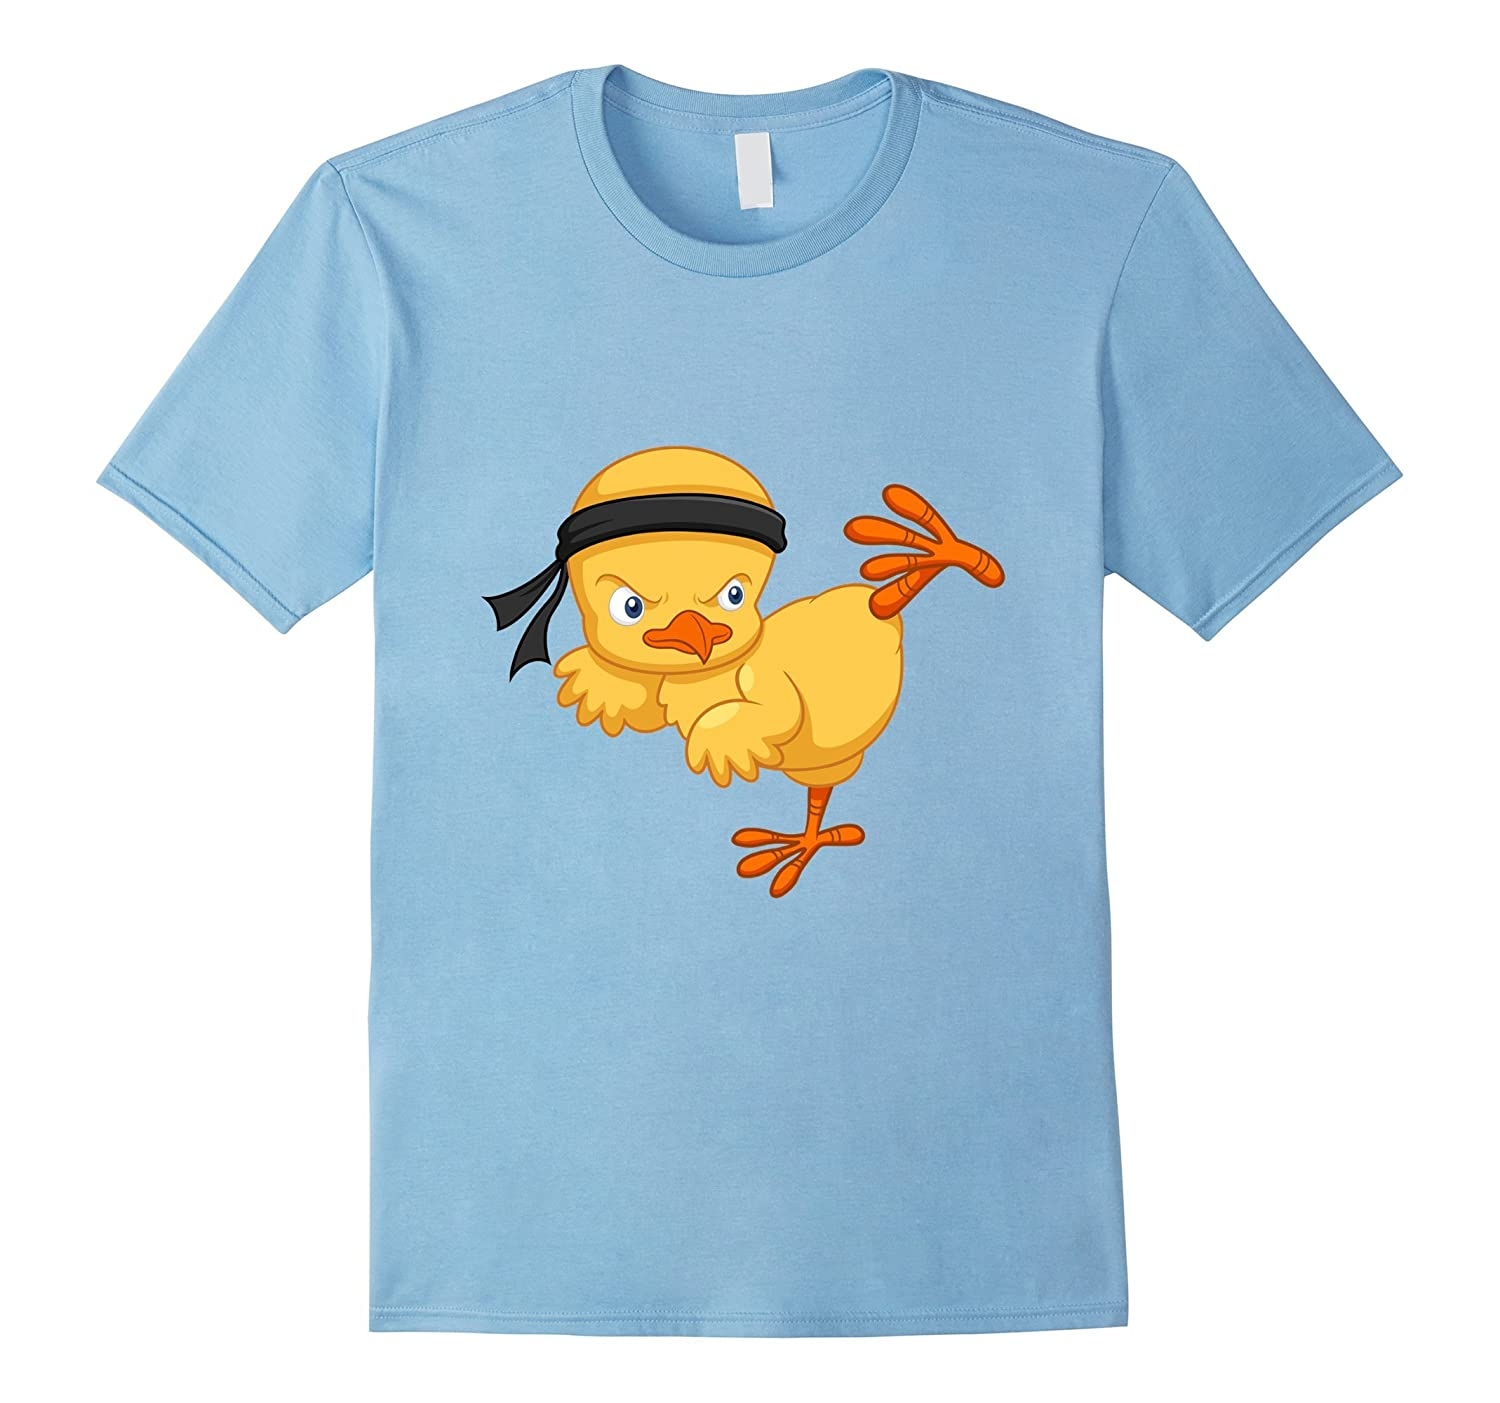 Karate Chick T-shirt for Karate lovers-TH